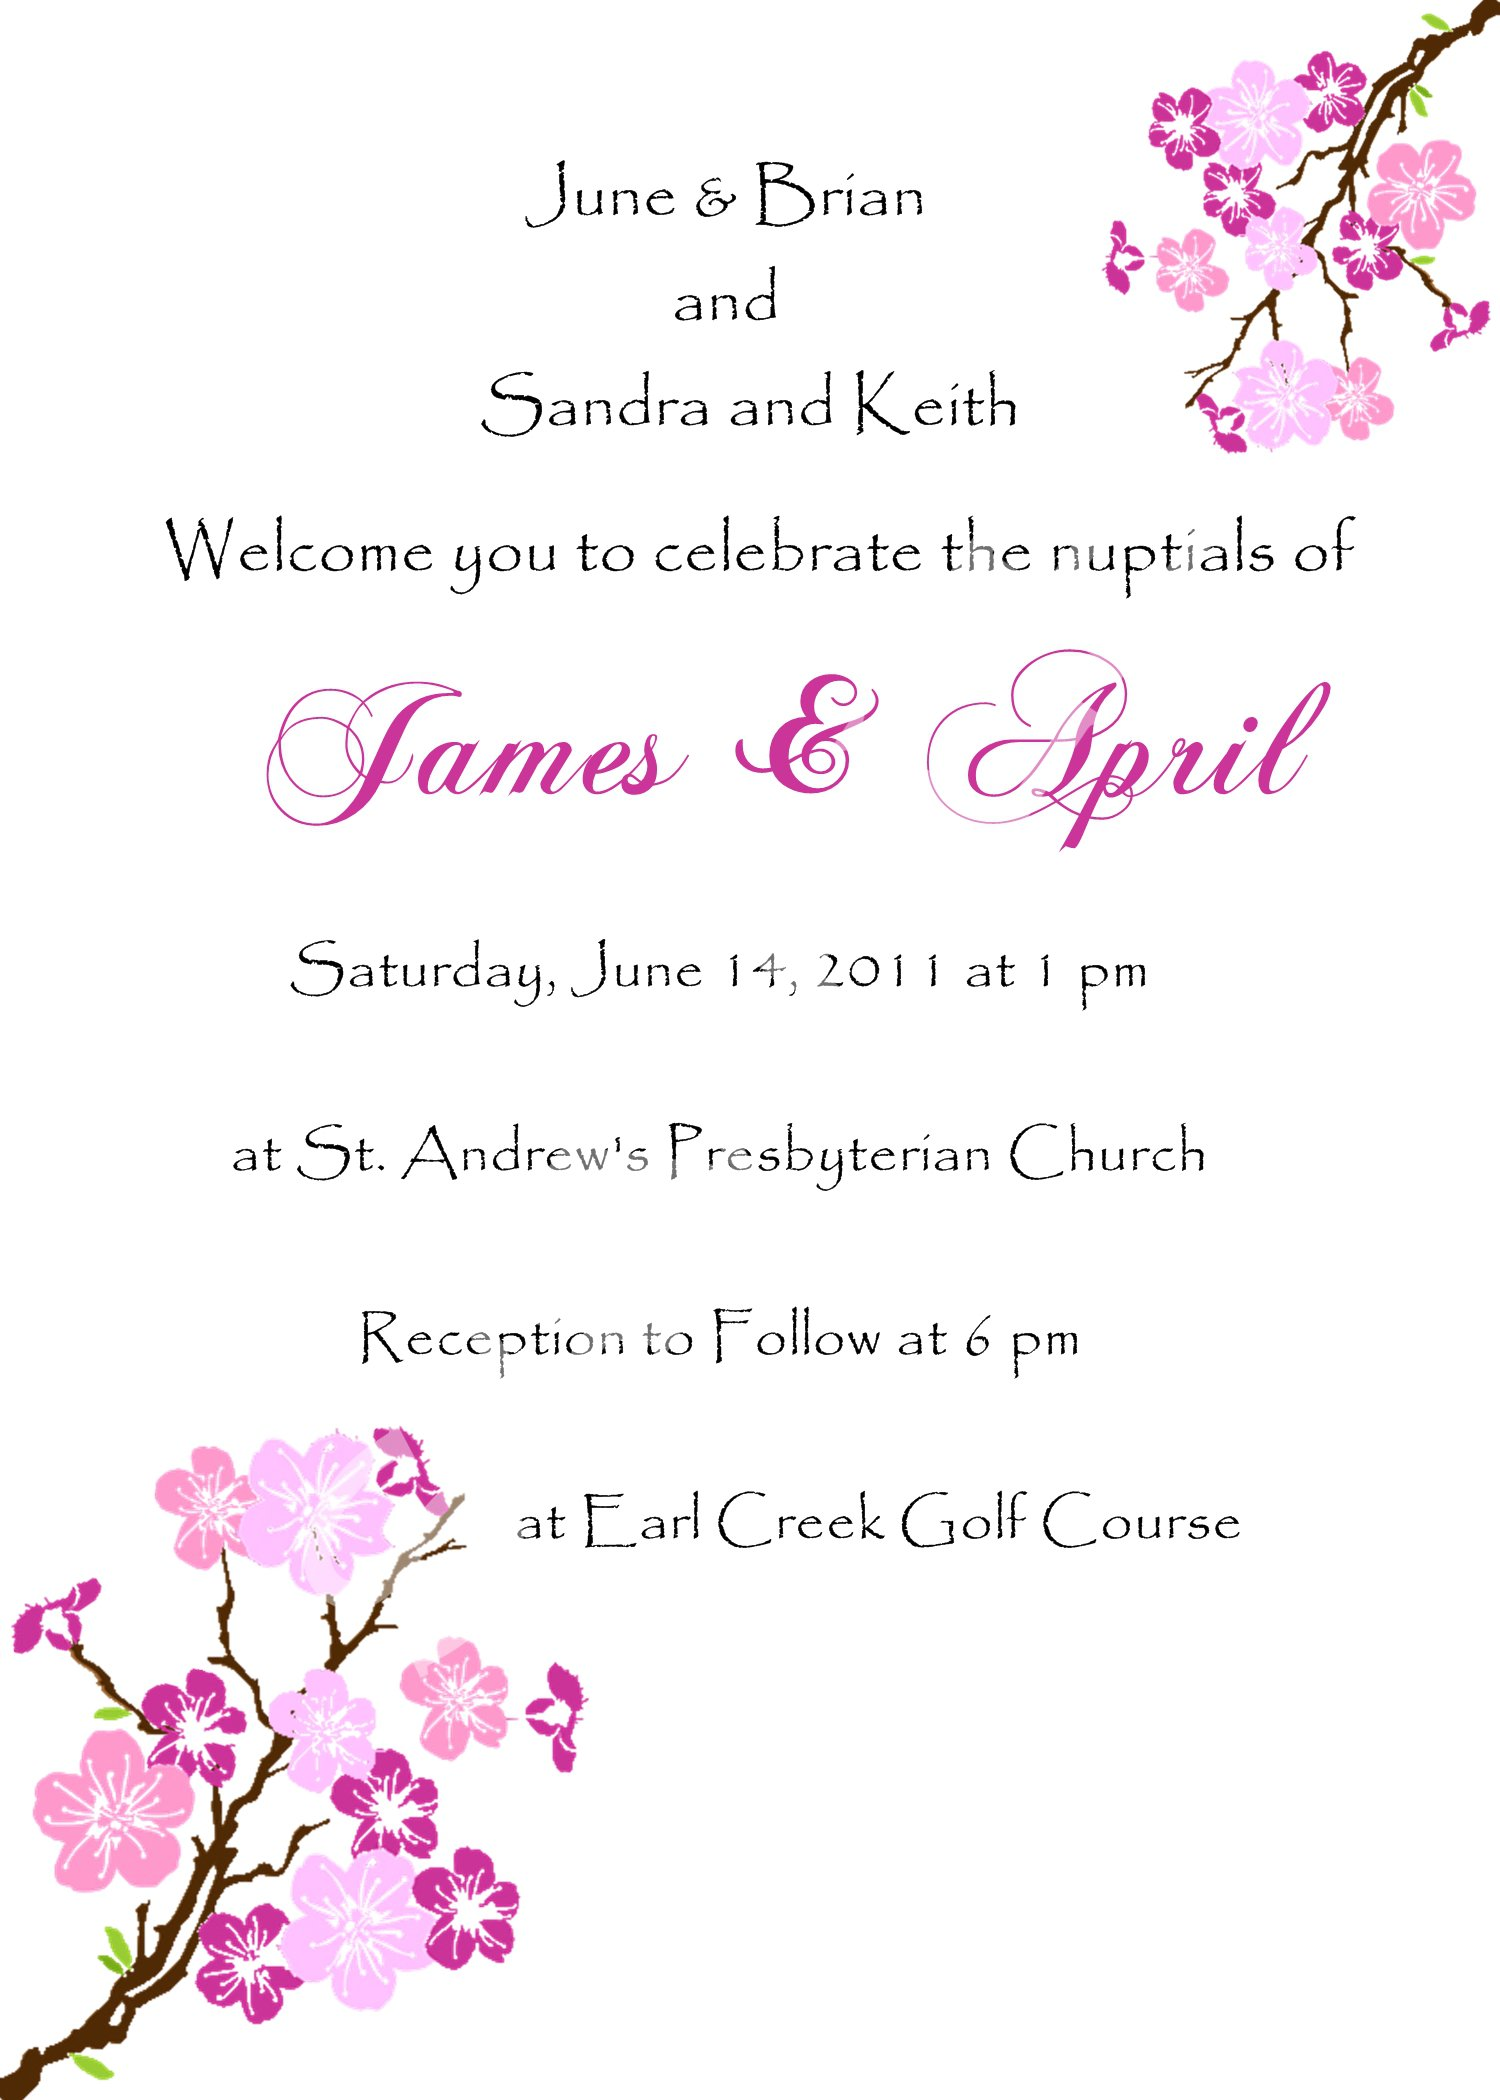 Cheap Wedding Invitations Packages: Affordable Wedding Invitations Packages